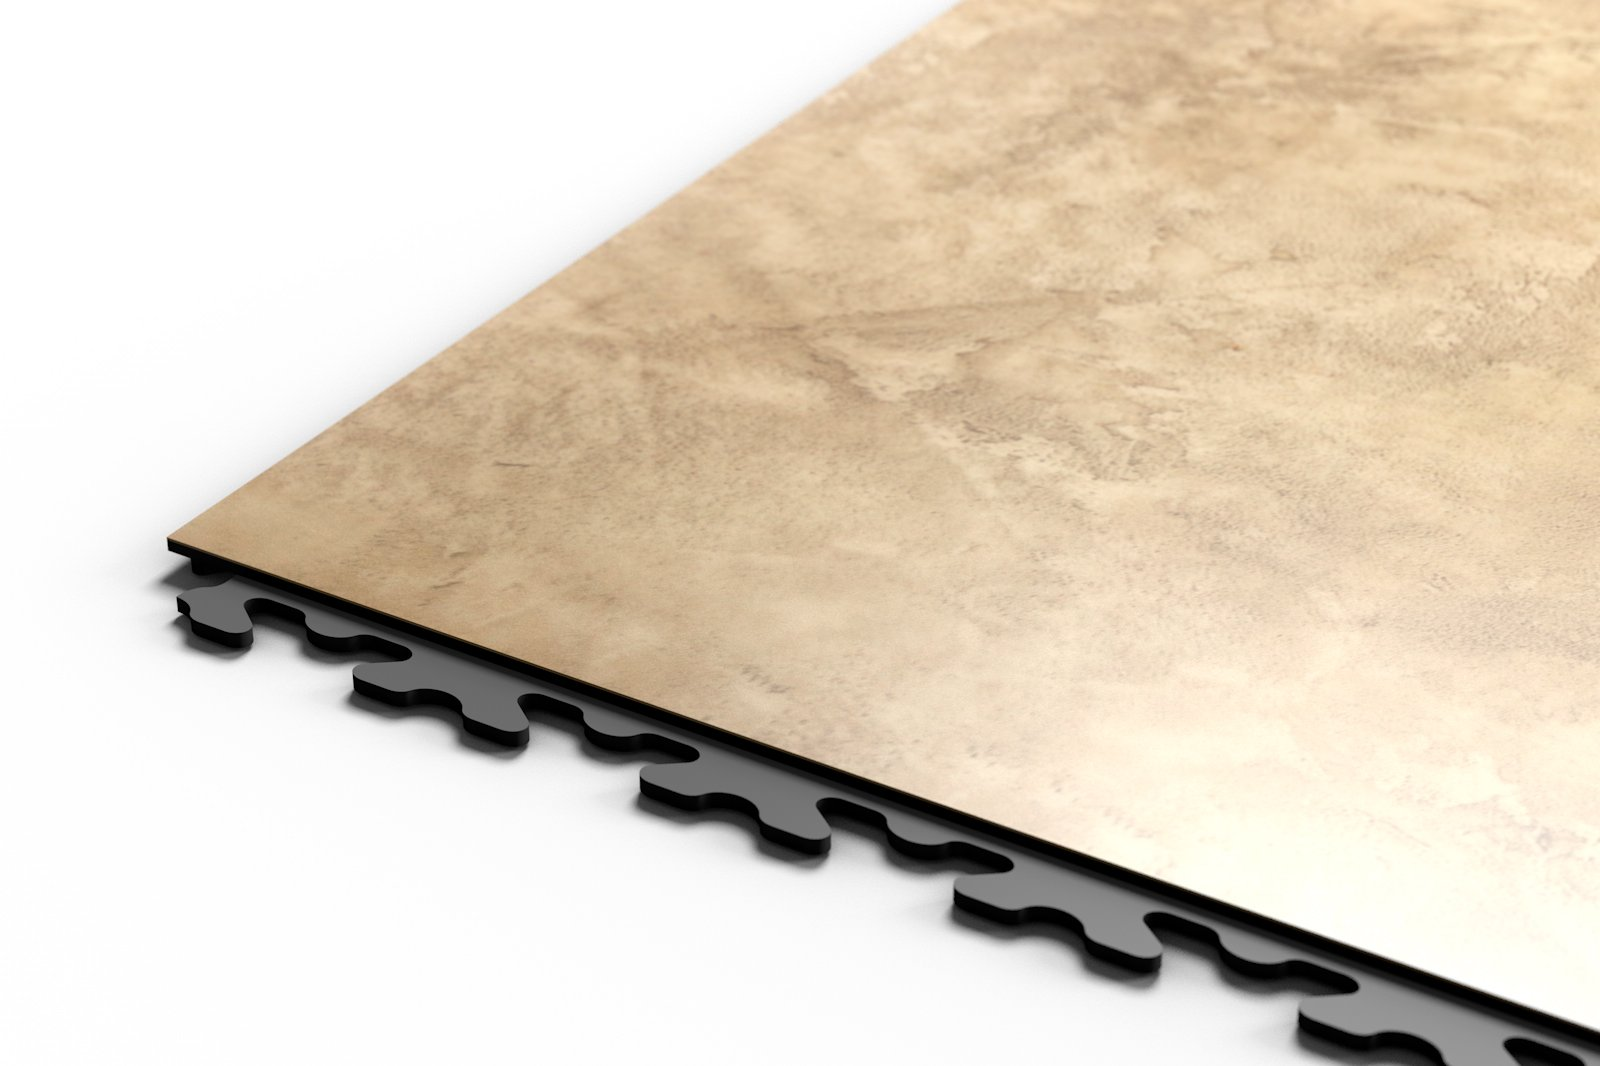 JP BUSINESS DECOR PVC Tile Flooring JägerPlastik - Pvc platten für boden